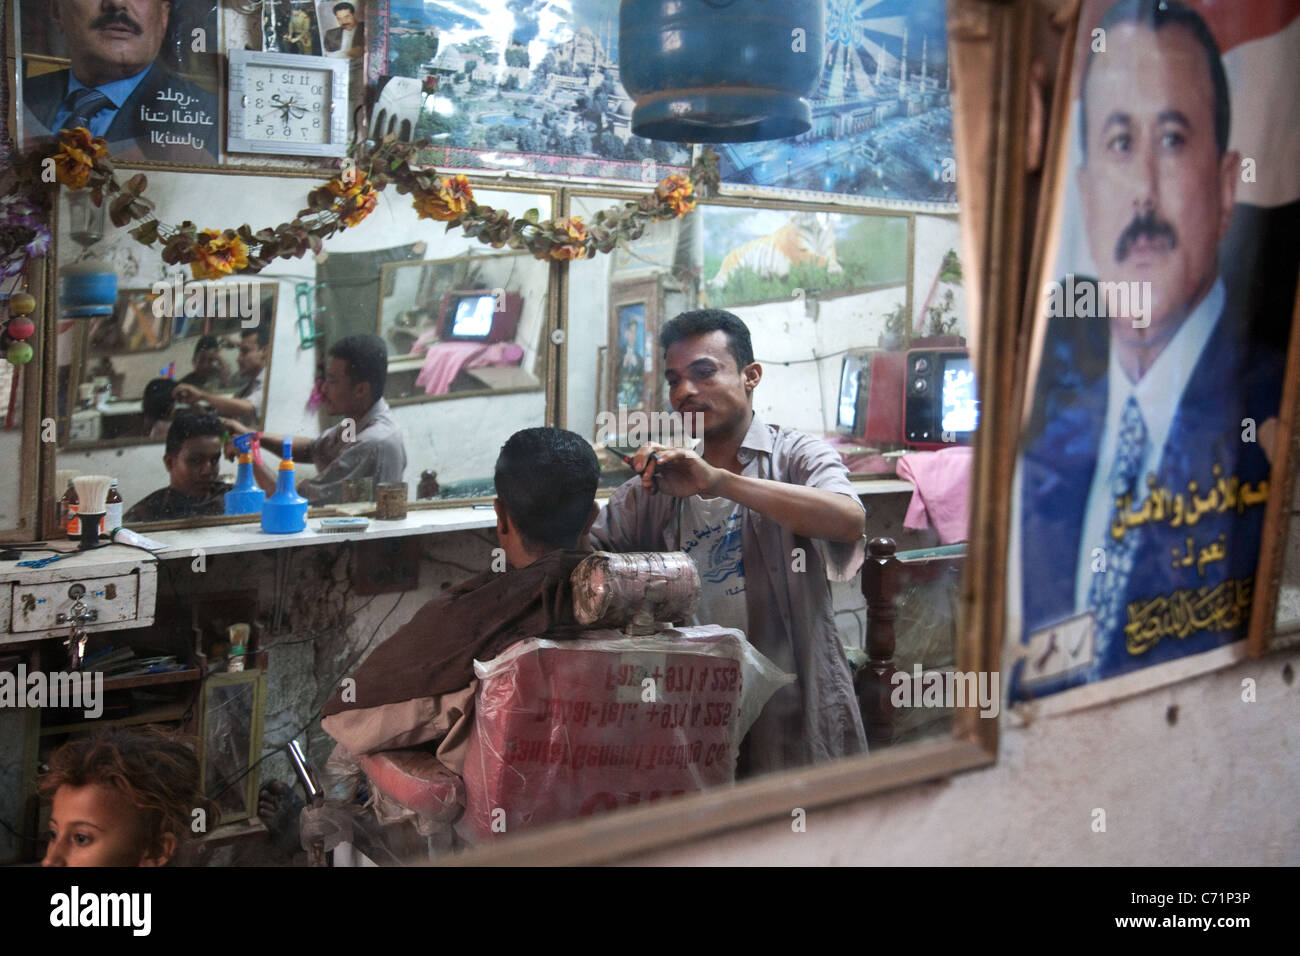 Interior of a barber shop with mirrors and the poster of the  president Ali Abdullah Saleh in Zabid, Yemen. - Stock Image